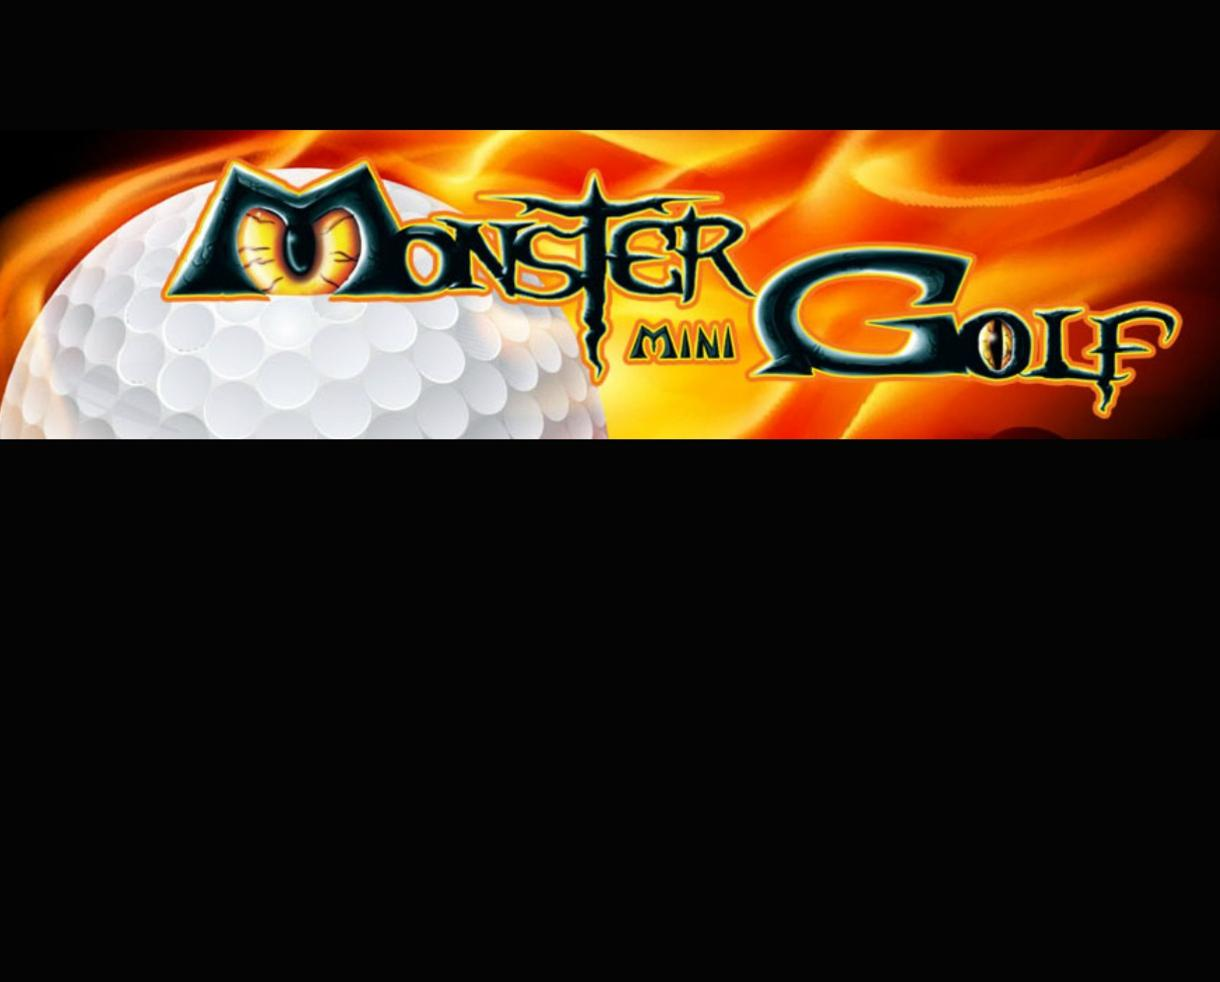 $11 for TWO Rounds of Glow-in-the-Dark Mini Golf OR $22 for FOUR Rounds - Monster Mini Golf in Chantilly (50% Off)